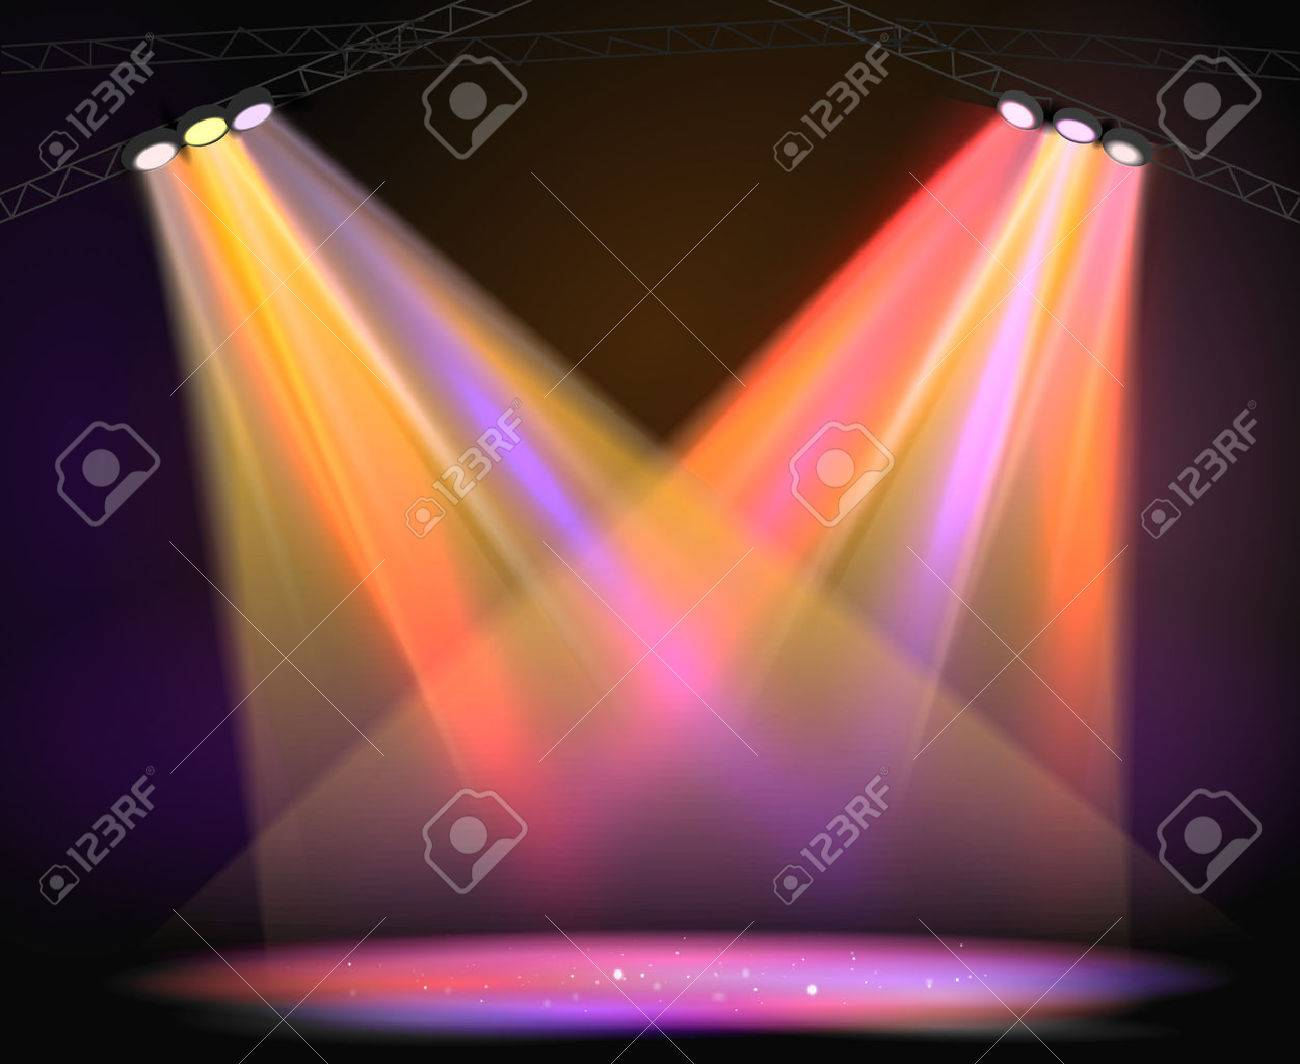 Background image of spotlights with stage in color - 49819721